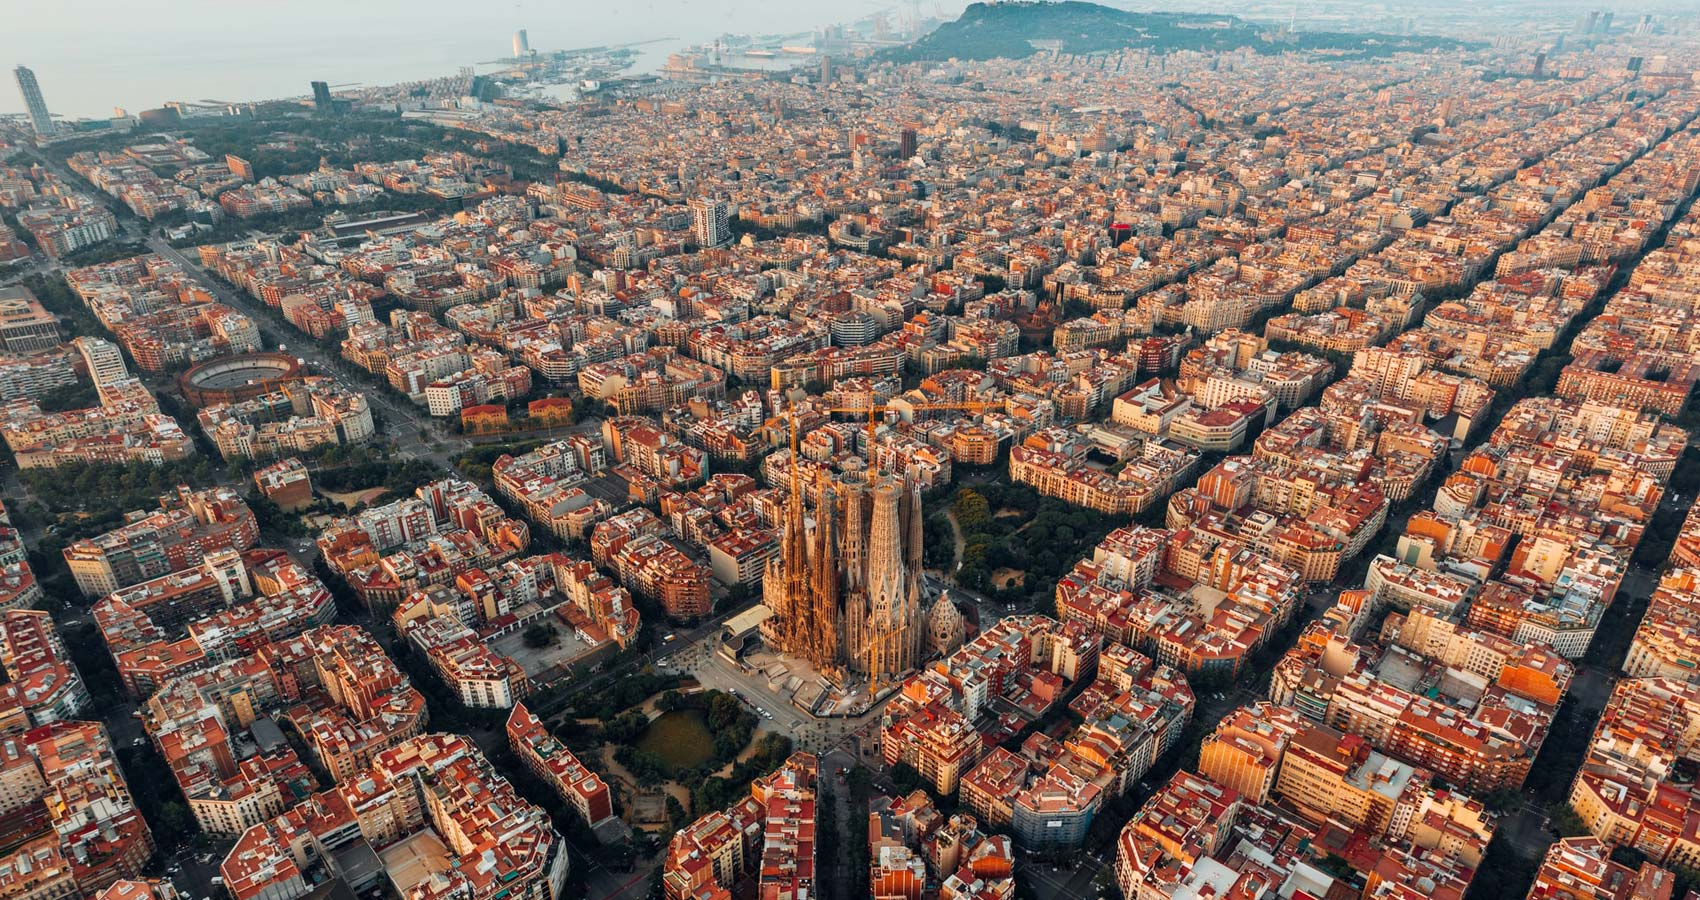 Barcelona in My Dreams, a poem by Ingrid at Spillwords.com